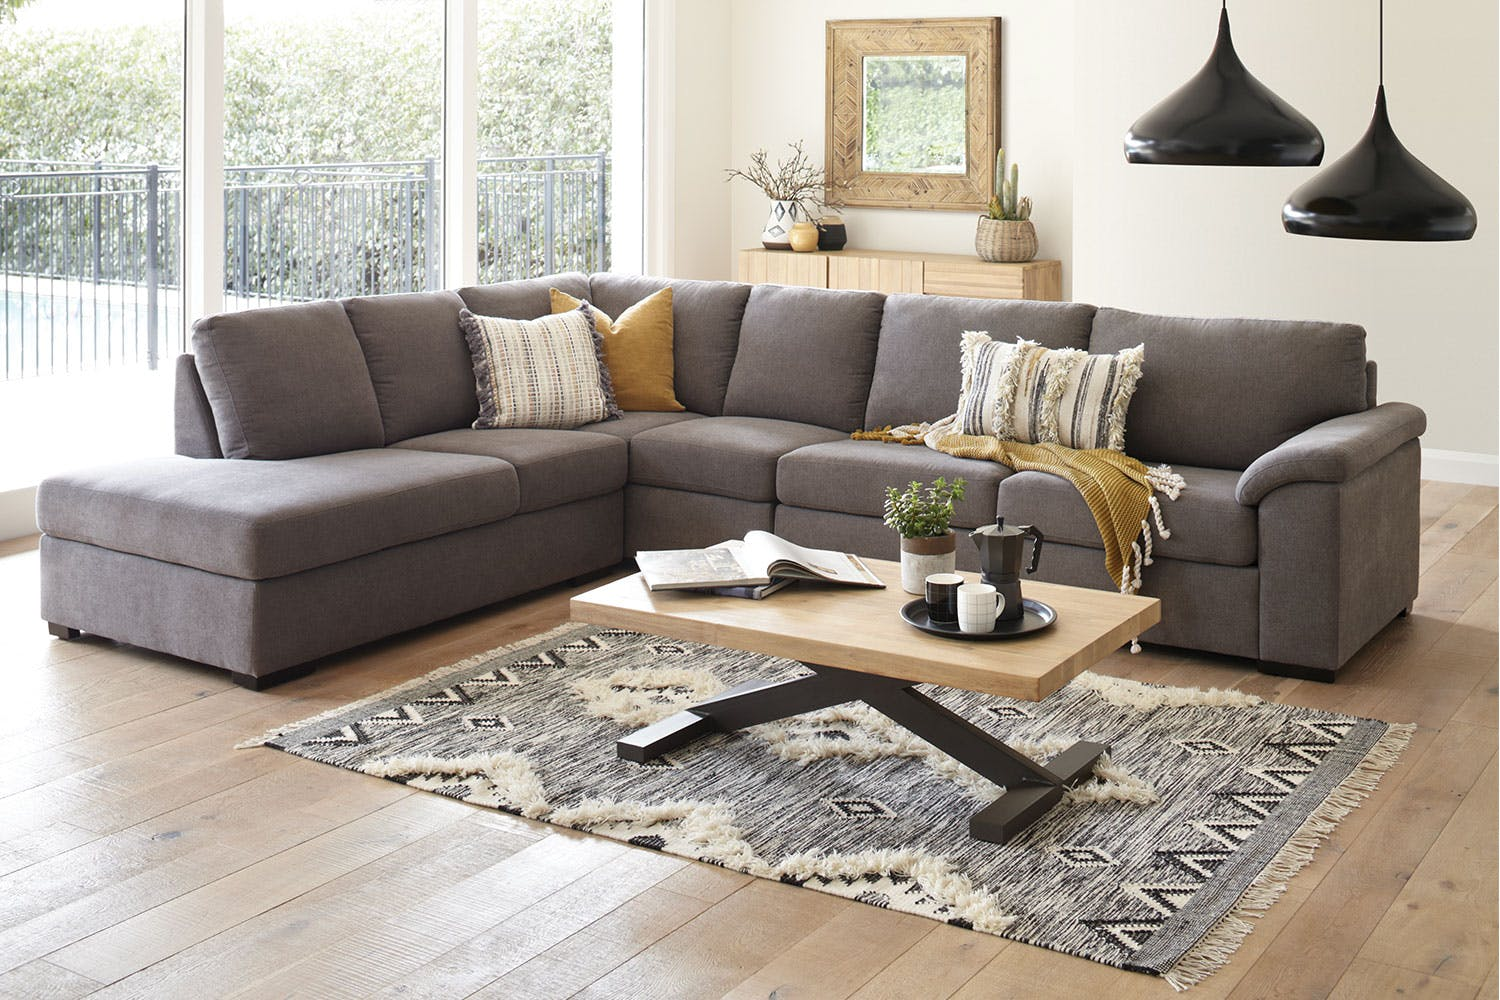 Nebula 5 Seater Fabric Sofa With Chaise